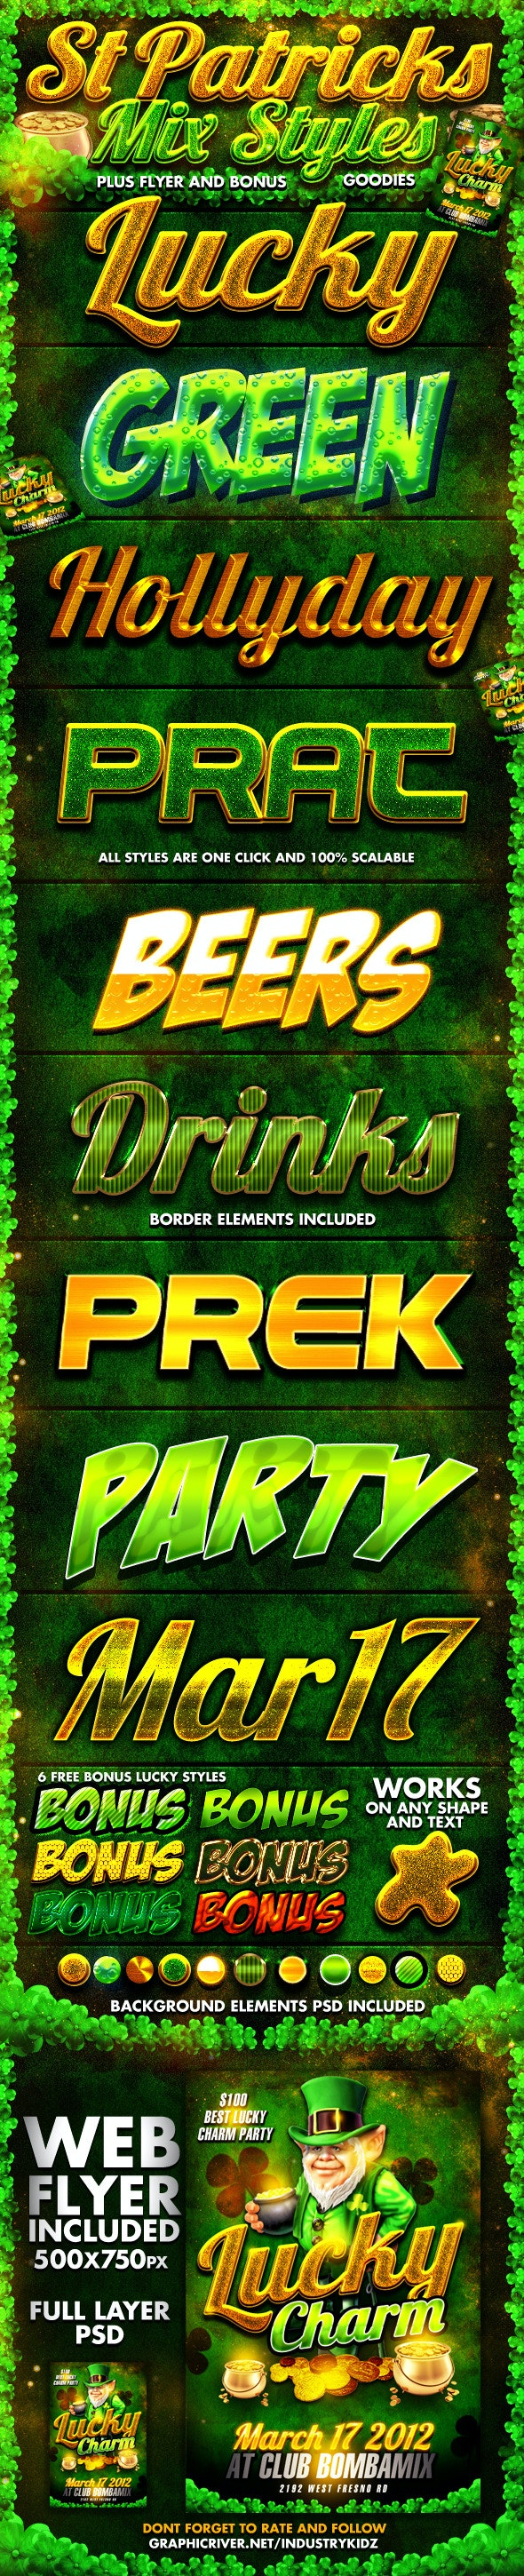 St Patricks Day Photoshop Styles and Web Flyer - Text Effects Styles